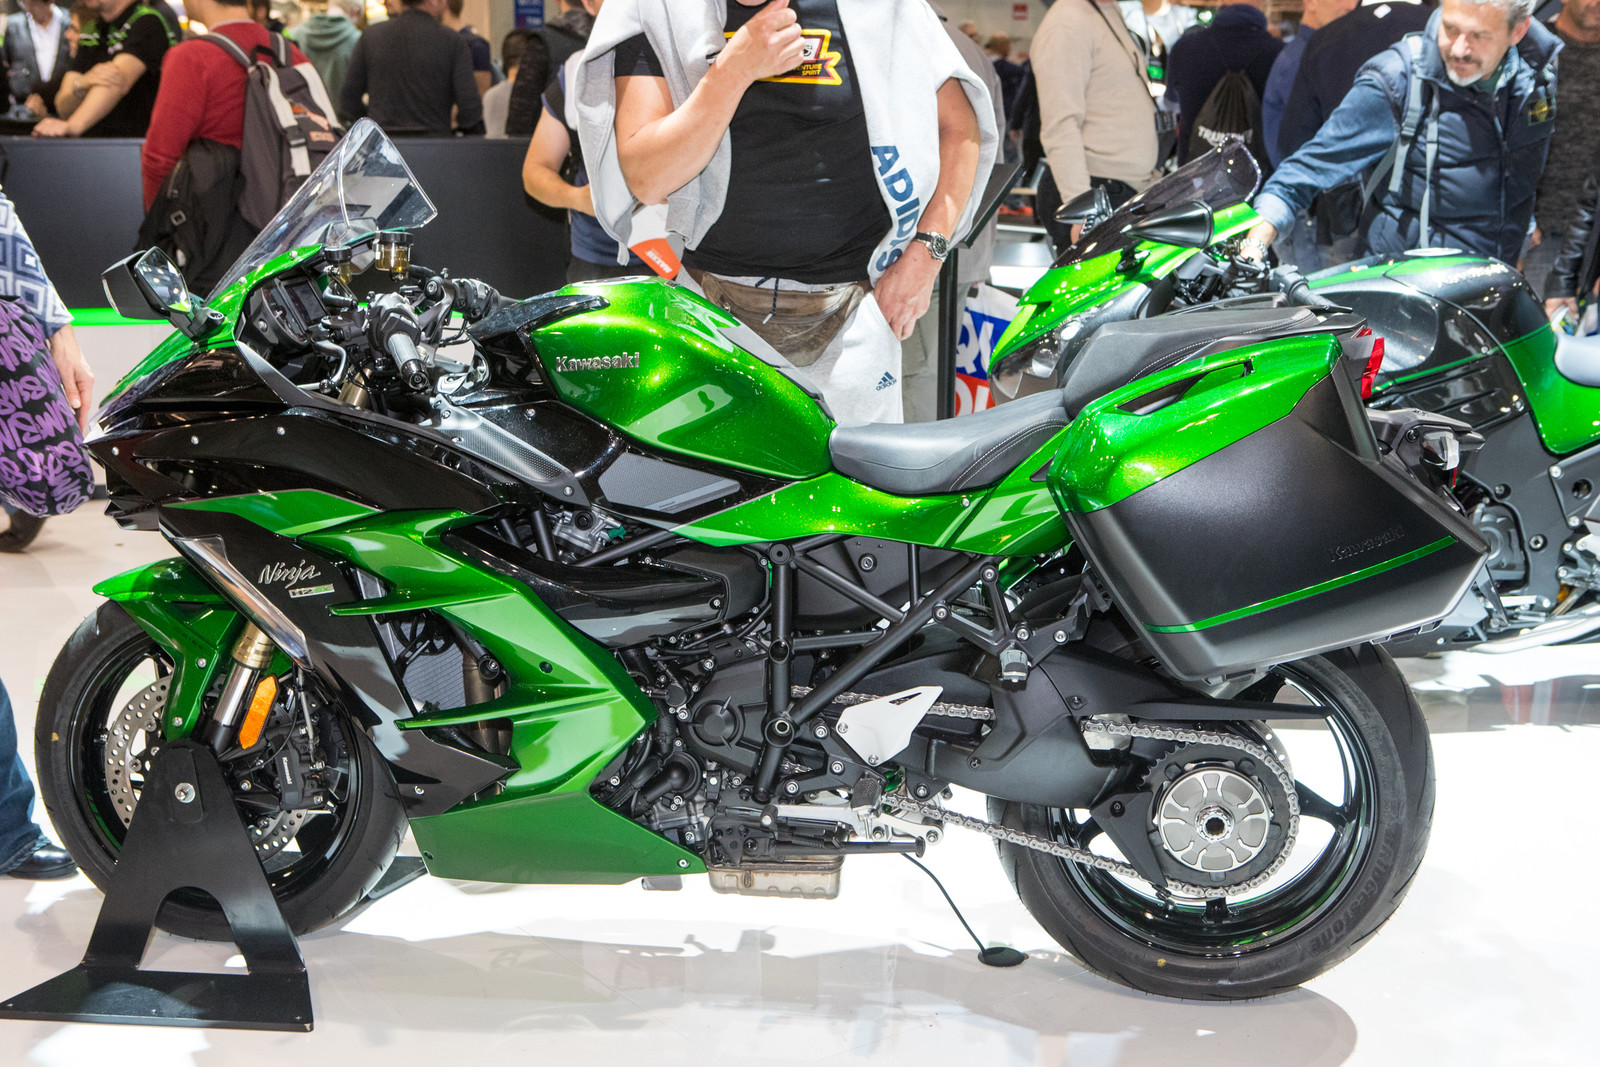 Kawasaki Ninja H2-SX - 2017 EICMA - Milan Motorcycle Show: Wrap-Up Coverage - Motocross Pictures - Vital MX